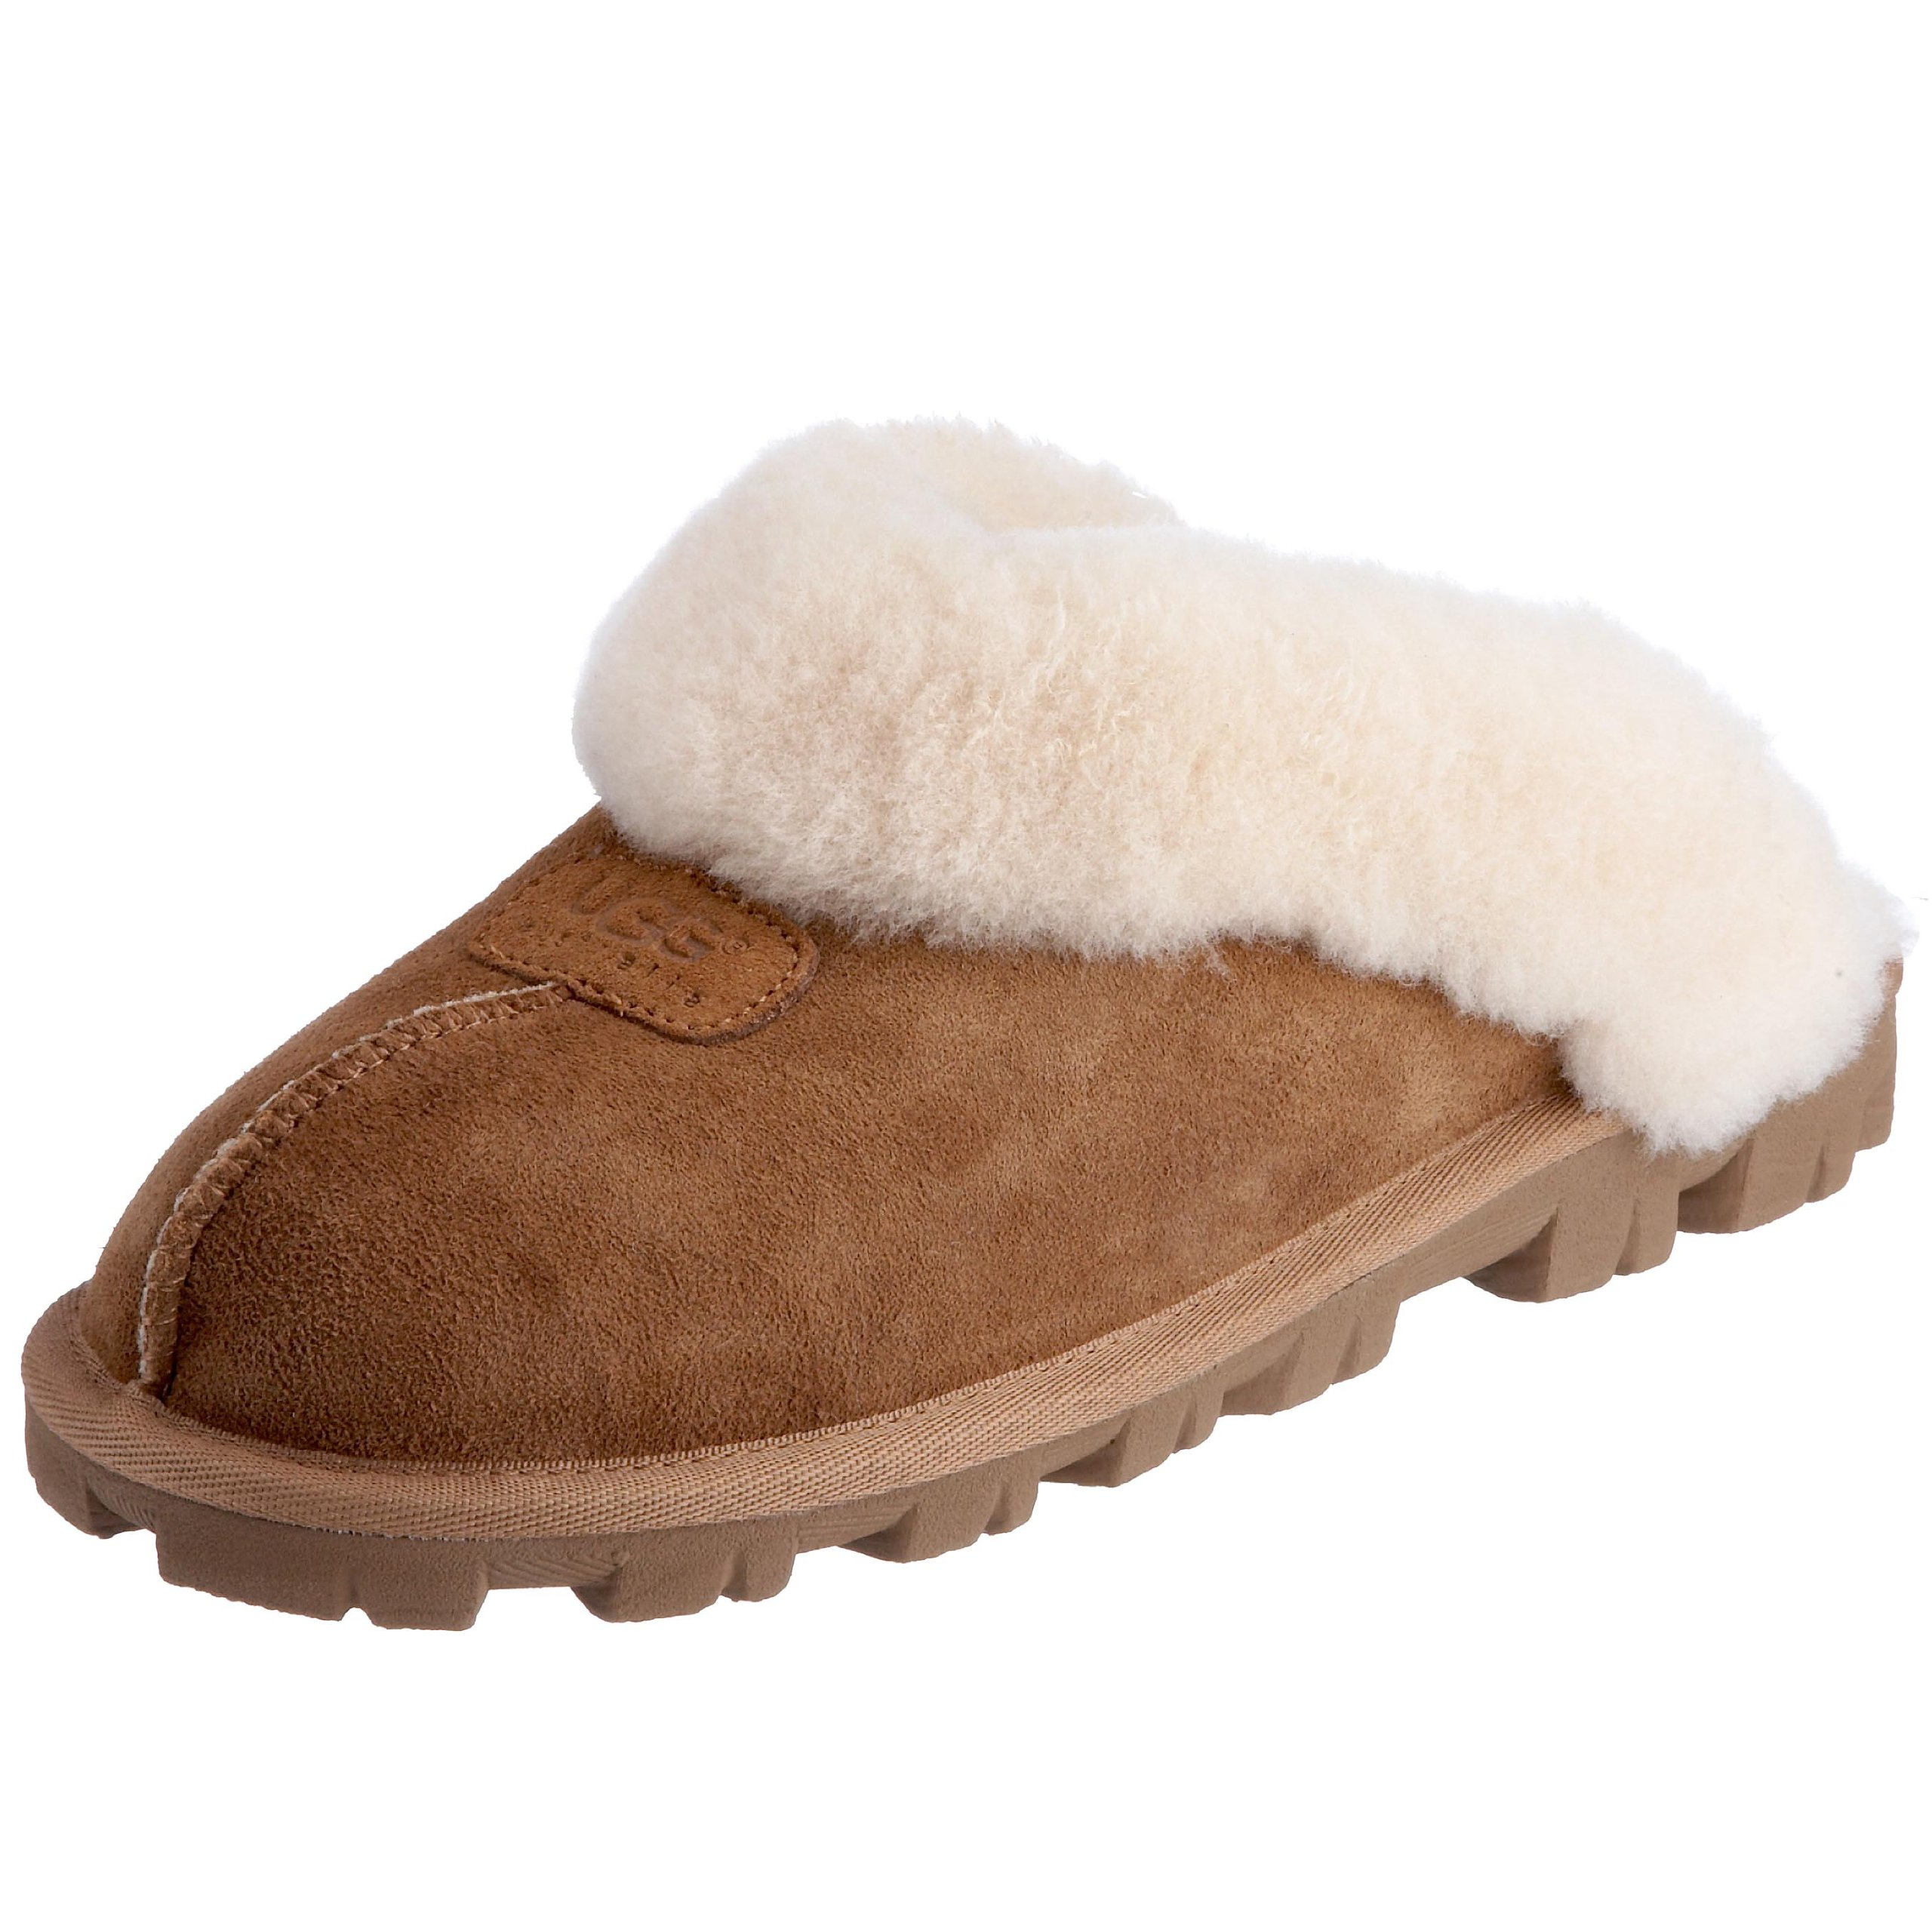 UGG Women's Coquette Chestnut Slipper - 8 B(M) US